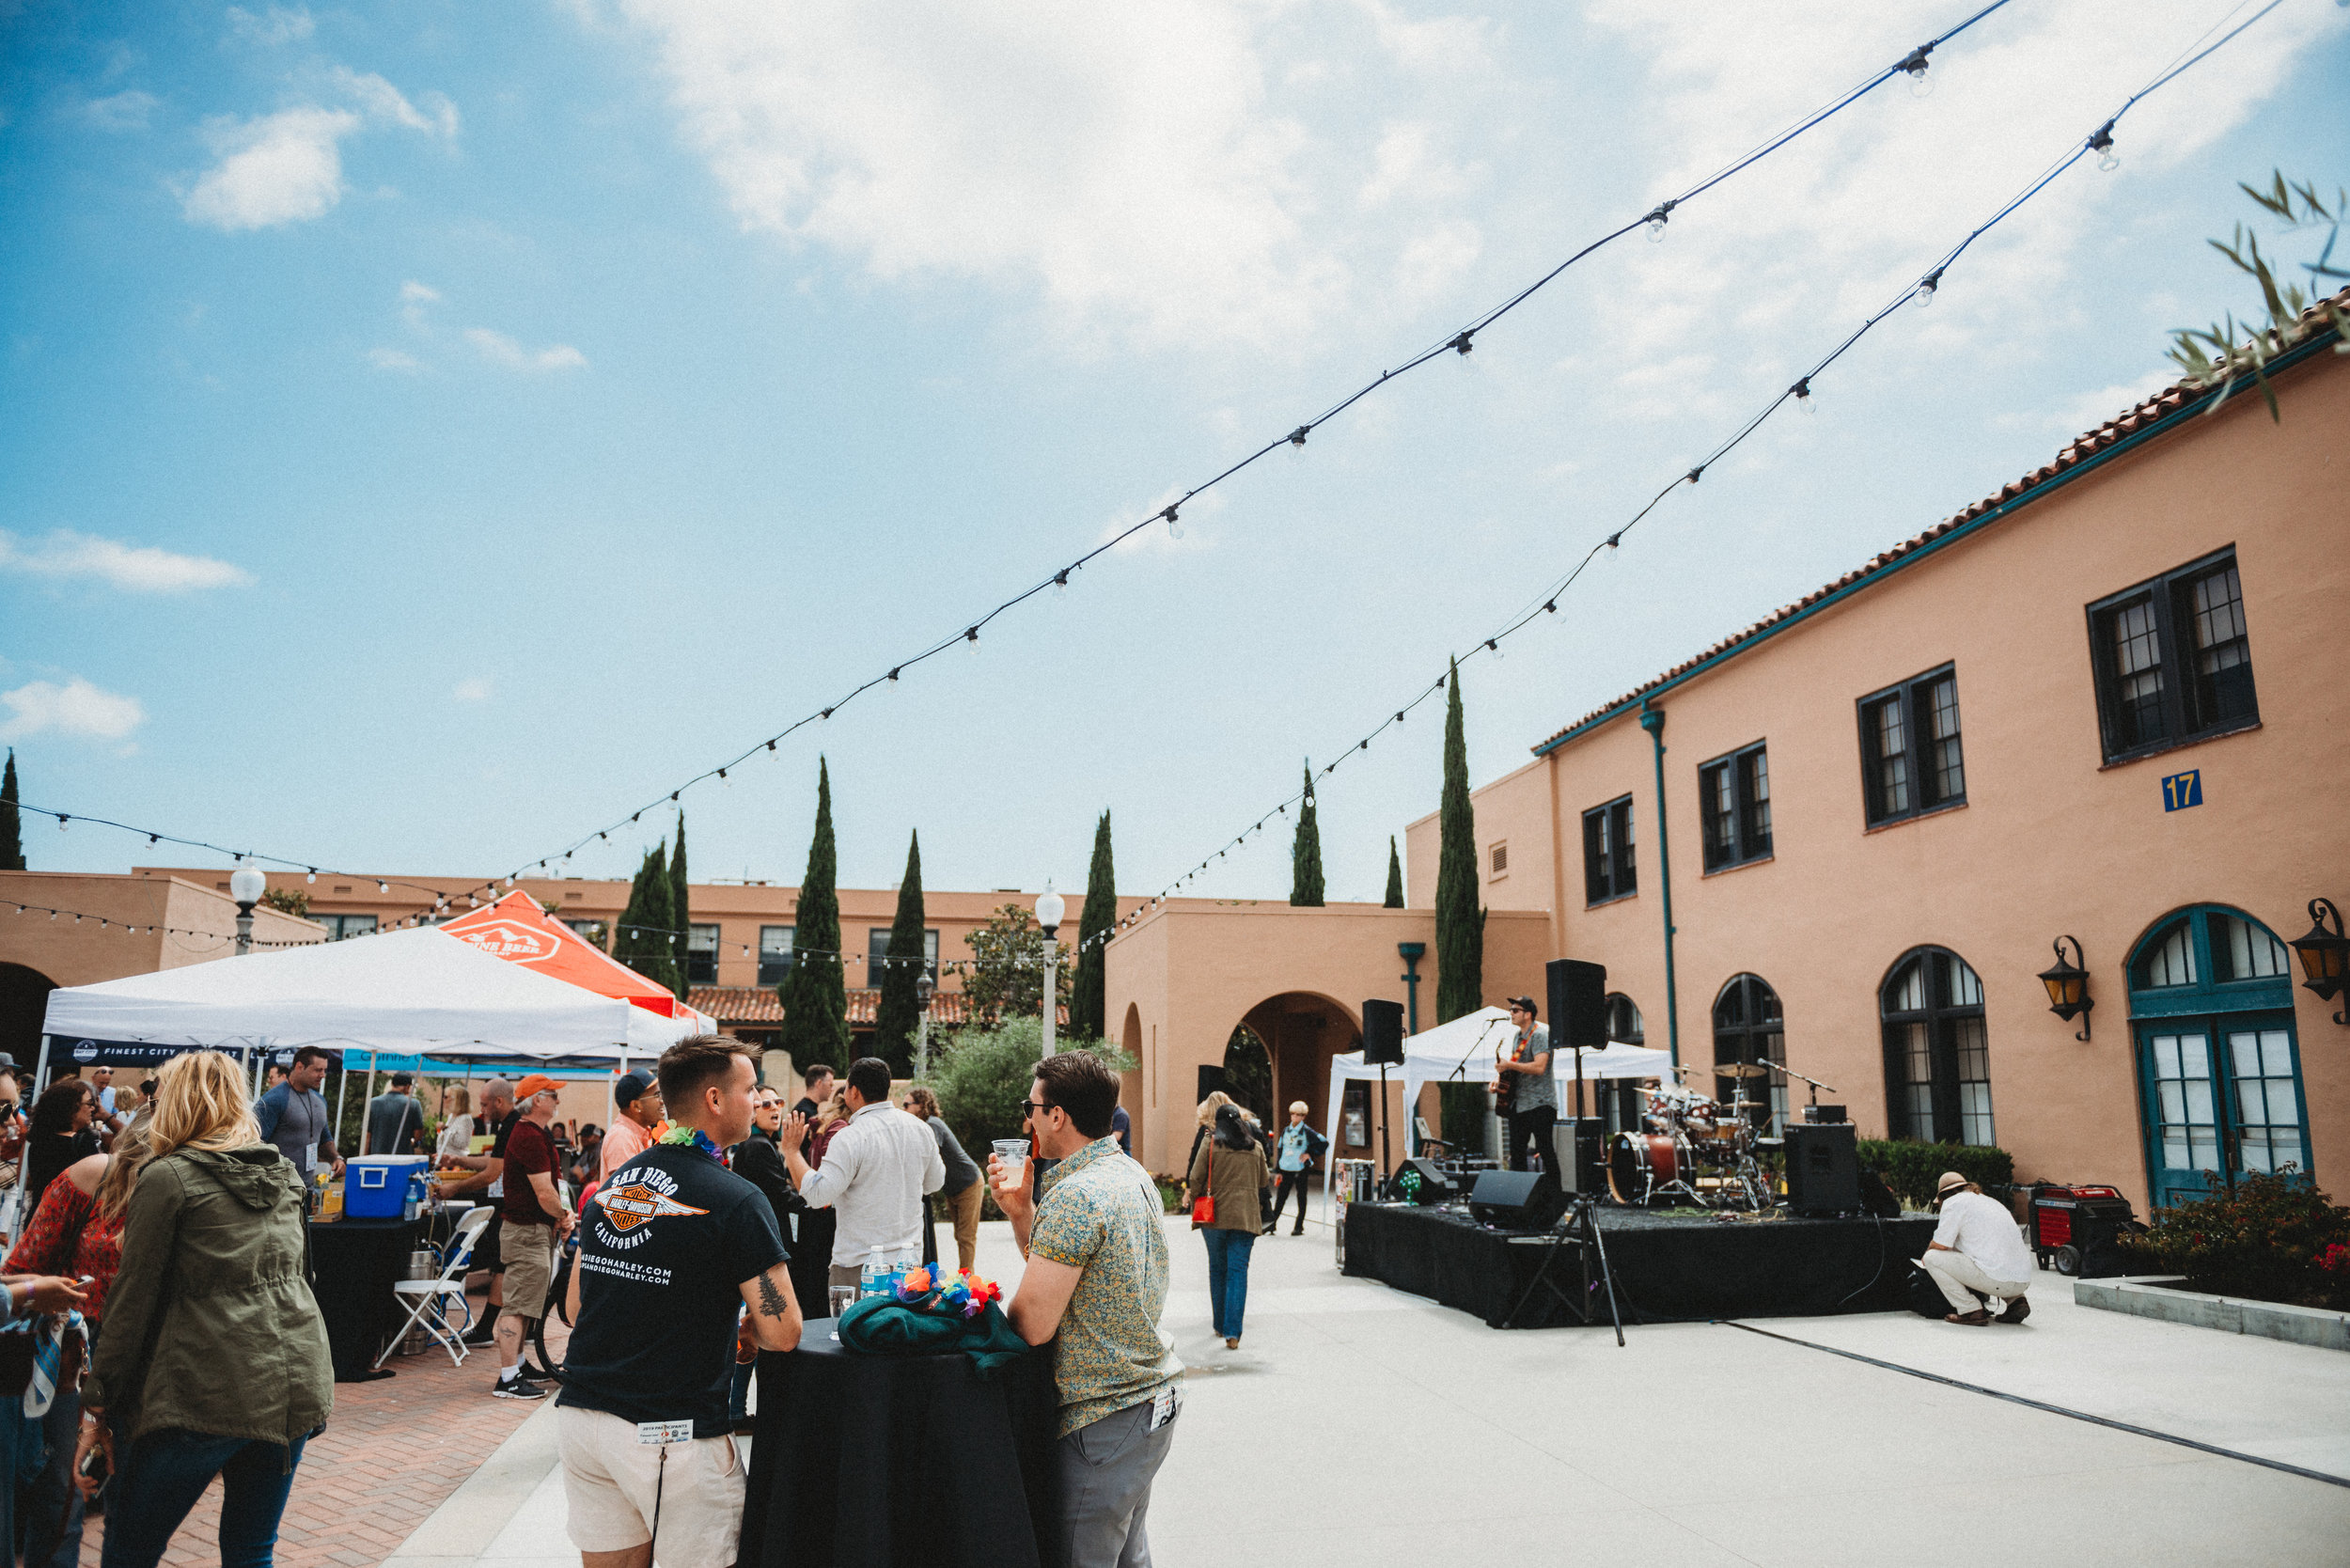 Barracks 17 offers a total blank slate to create the most perfect and specific event  ever . We love the open courtyard feel that allows space for pop-ups, stages and so much more!